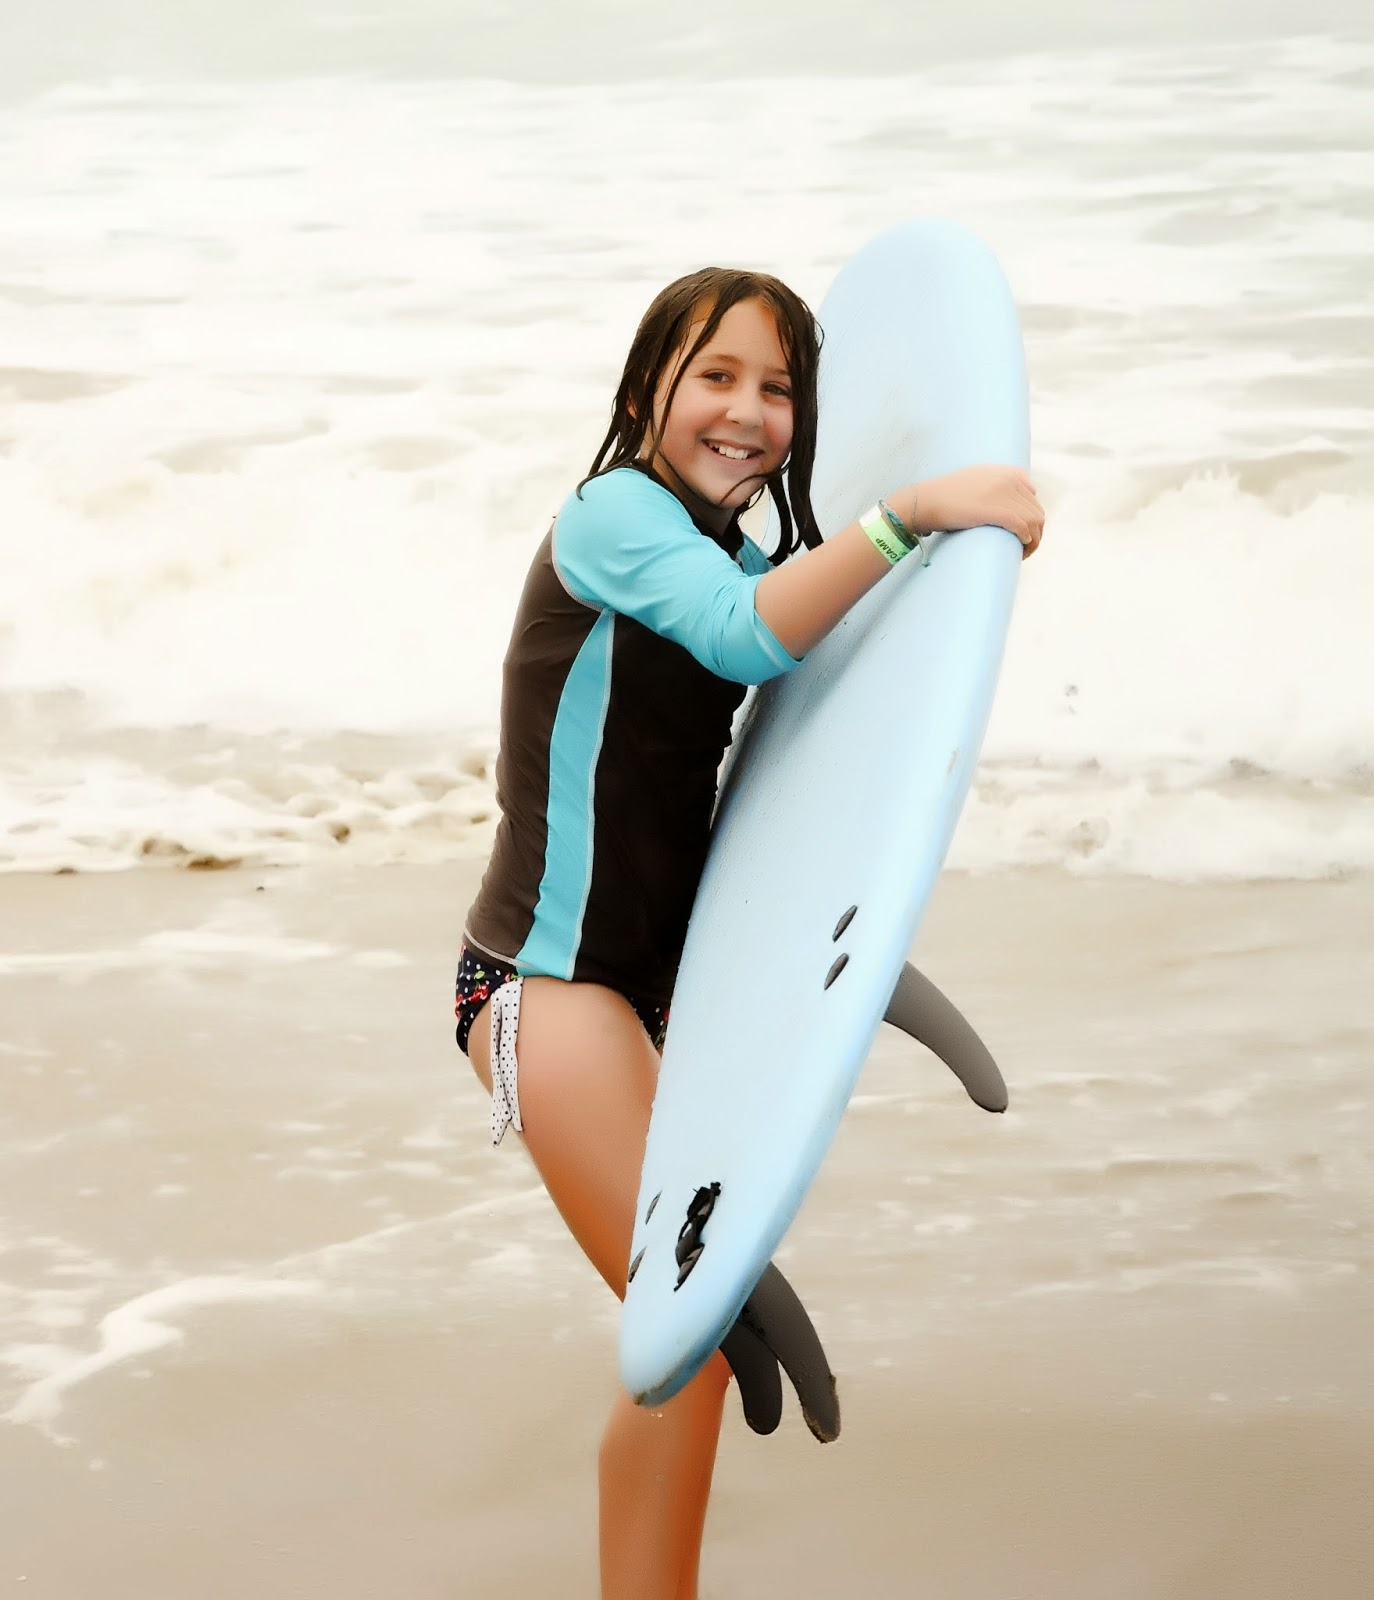 Female camper carrying a surfboard on the beach at Aloha Beach Camp Summer Camp in Los Angeles